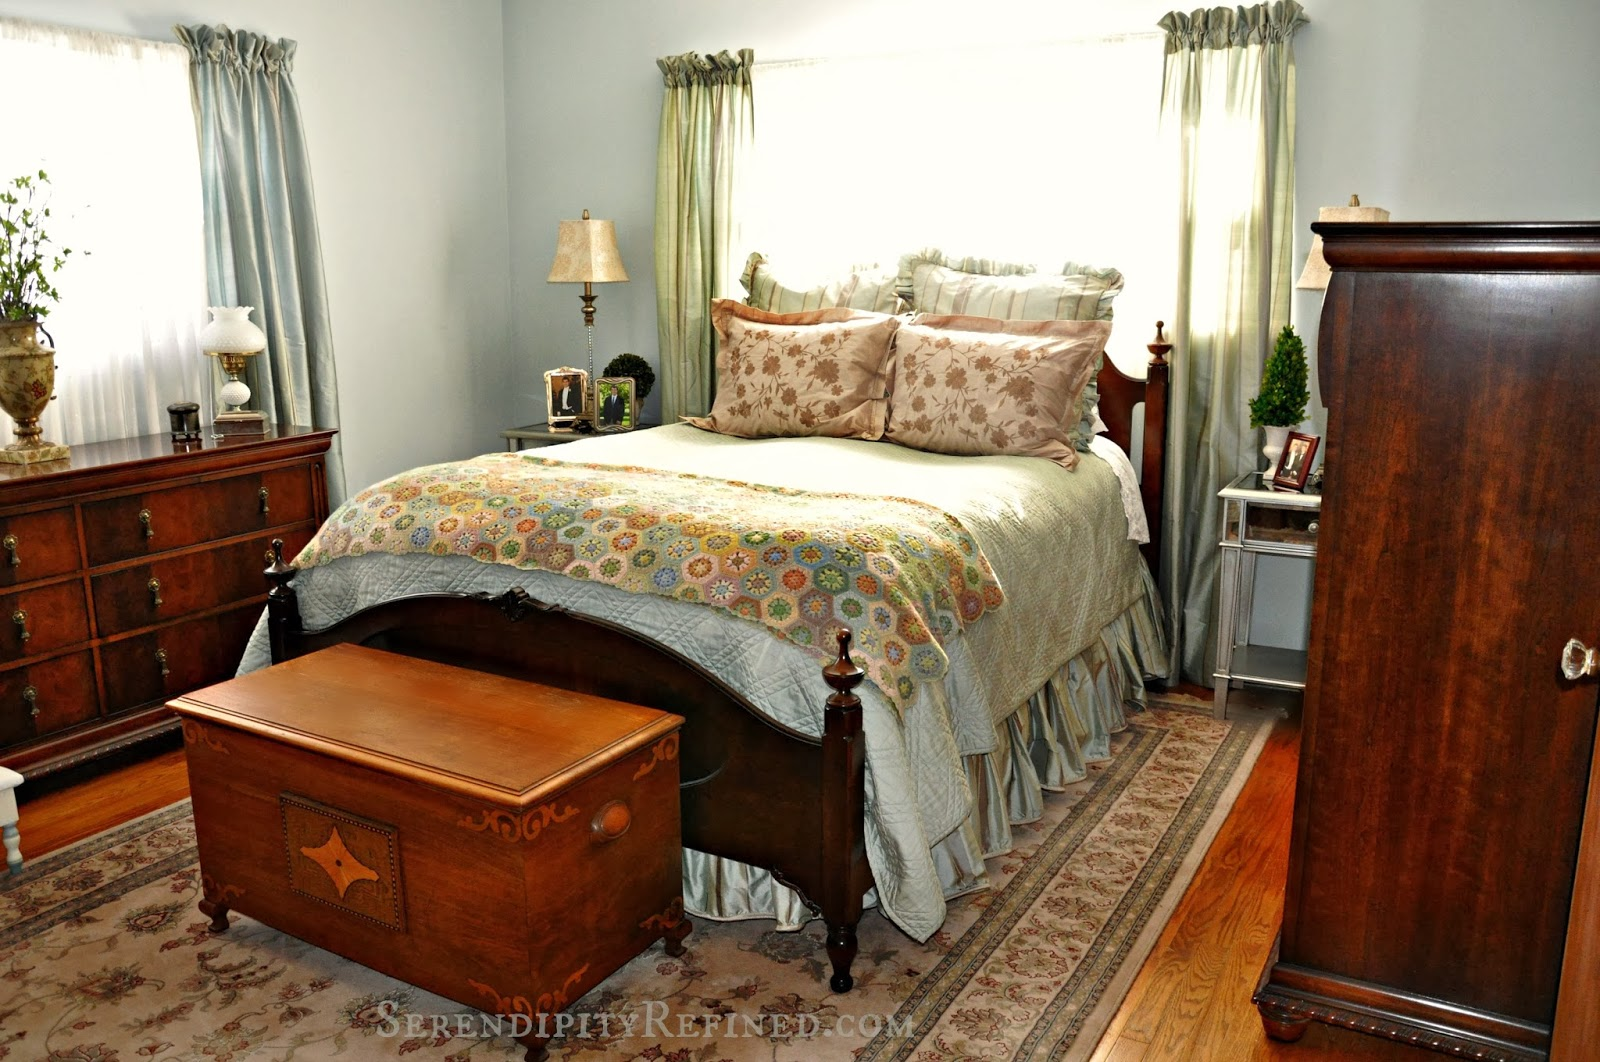 Serendipity Refined Blog Bedroom Progress Photos French